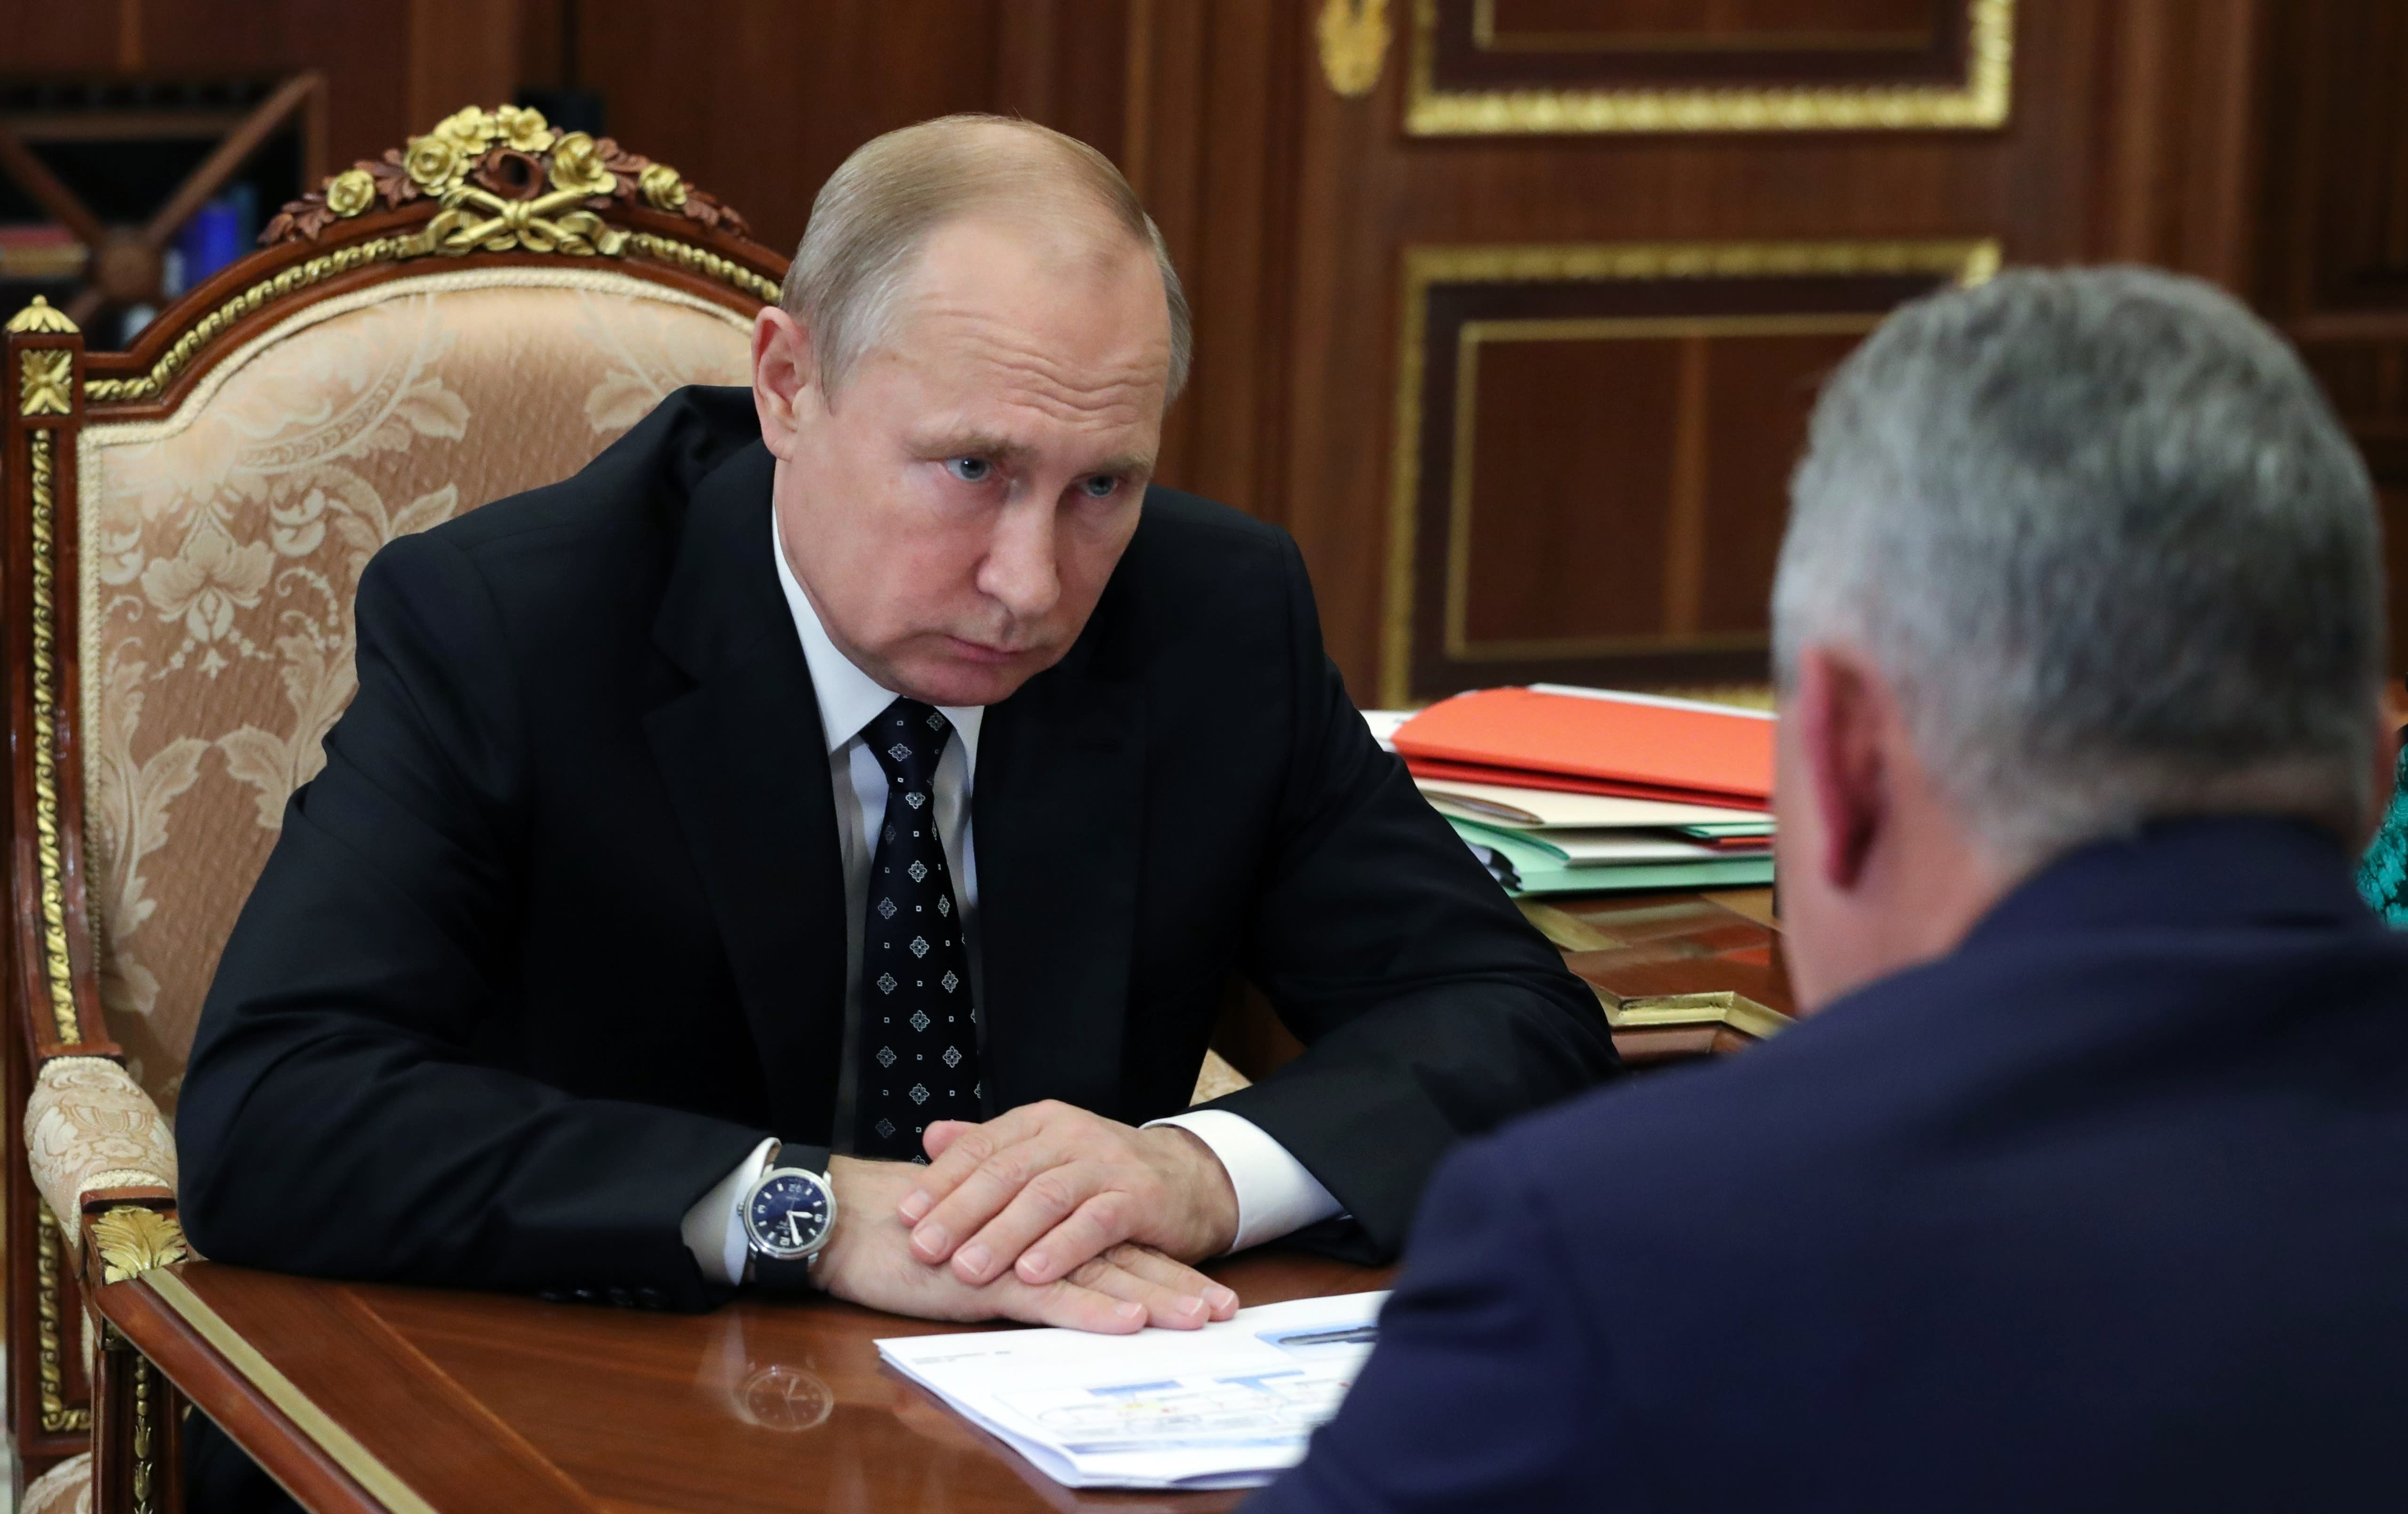 Russian President Vladimir Putin, left, listens to Russian Defense Minister Sergei Shoigu during their meeting in the Kremlin in Moscow, Russia, Thursday, July 4, 2019. Some crew members survived a fire that killed 14 sailors on one of the Russian navy's deep-sea submersibles, Russia's defense minister said Wednesday without specifying the number of survivors from the blaze. (Mikhail Klimentyev, Sputnik, Kremlin Pool Photo via AP)